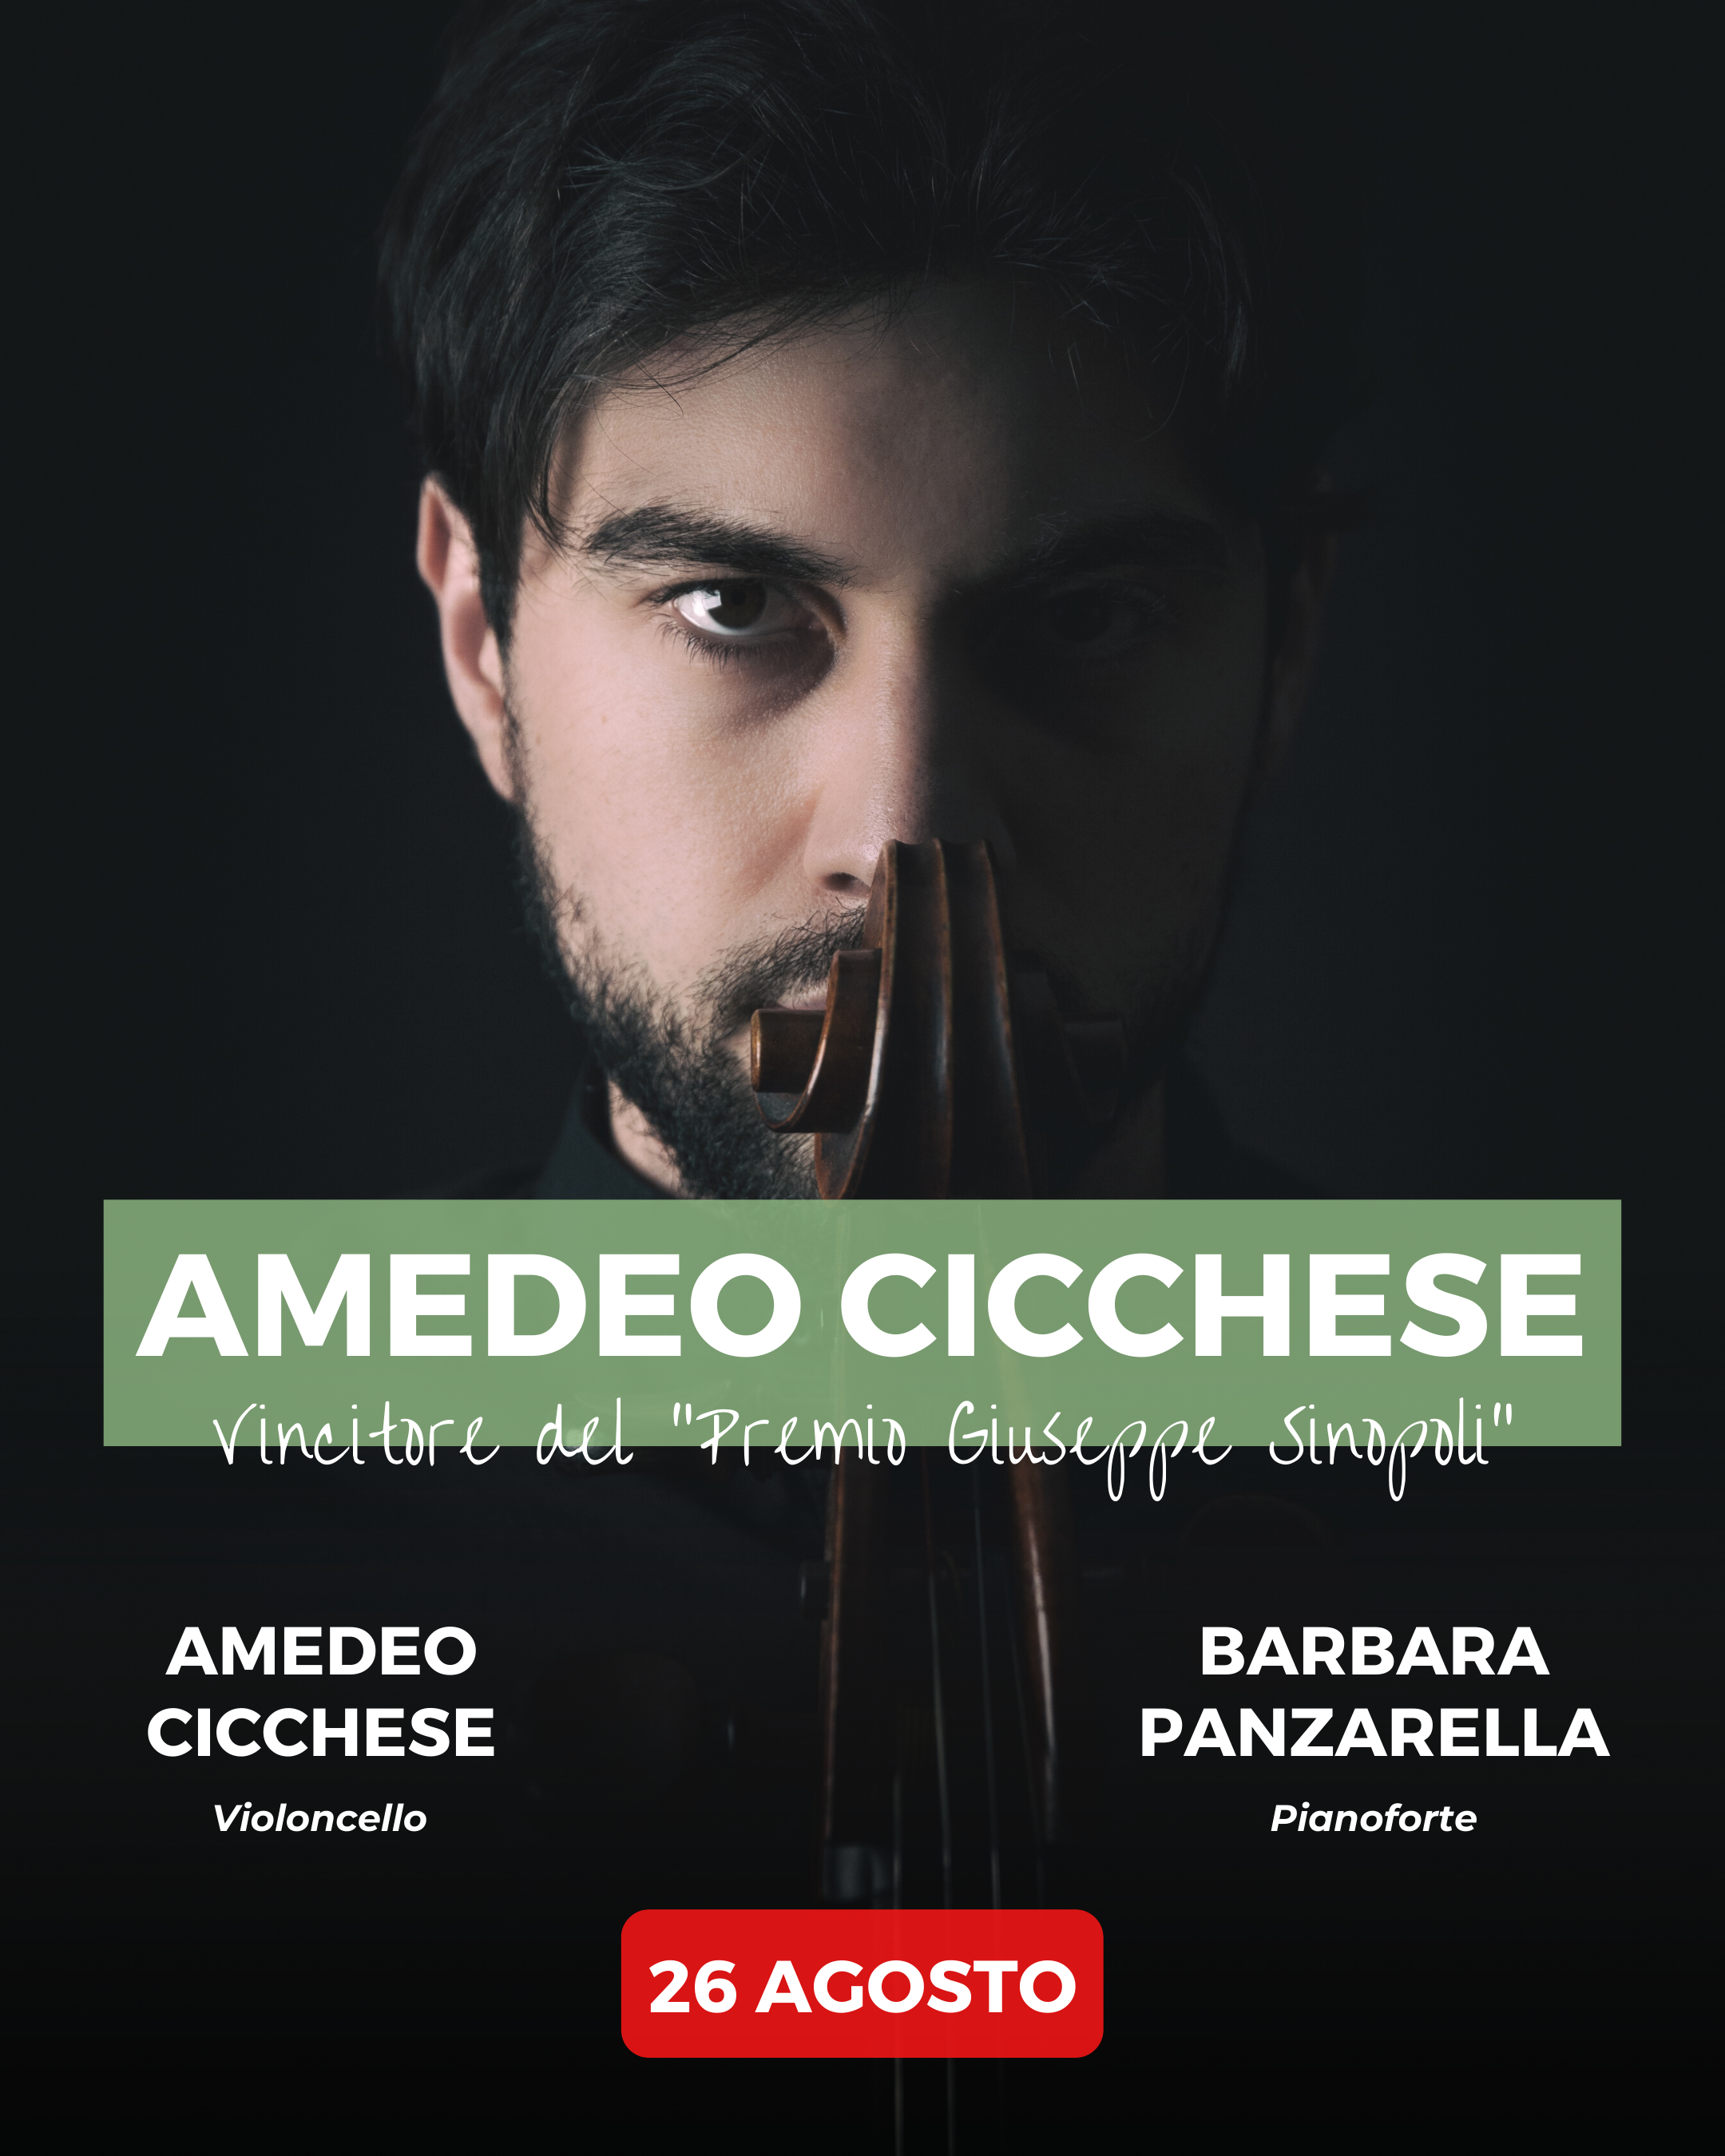 AMEDEO CICCHESE